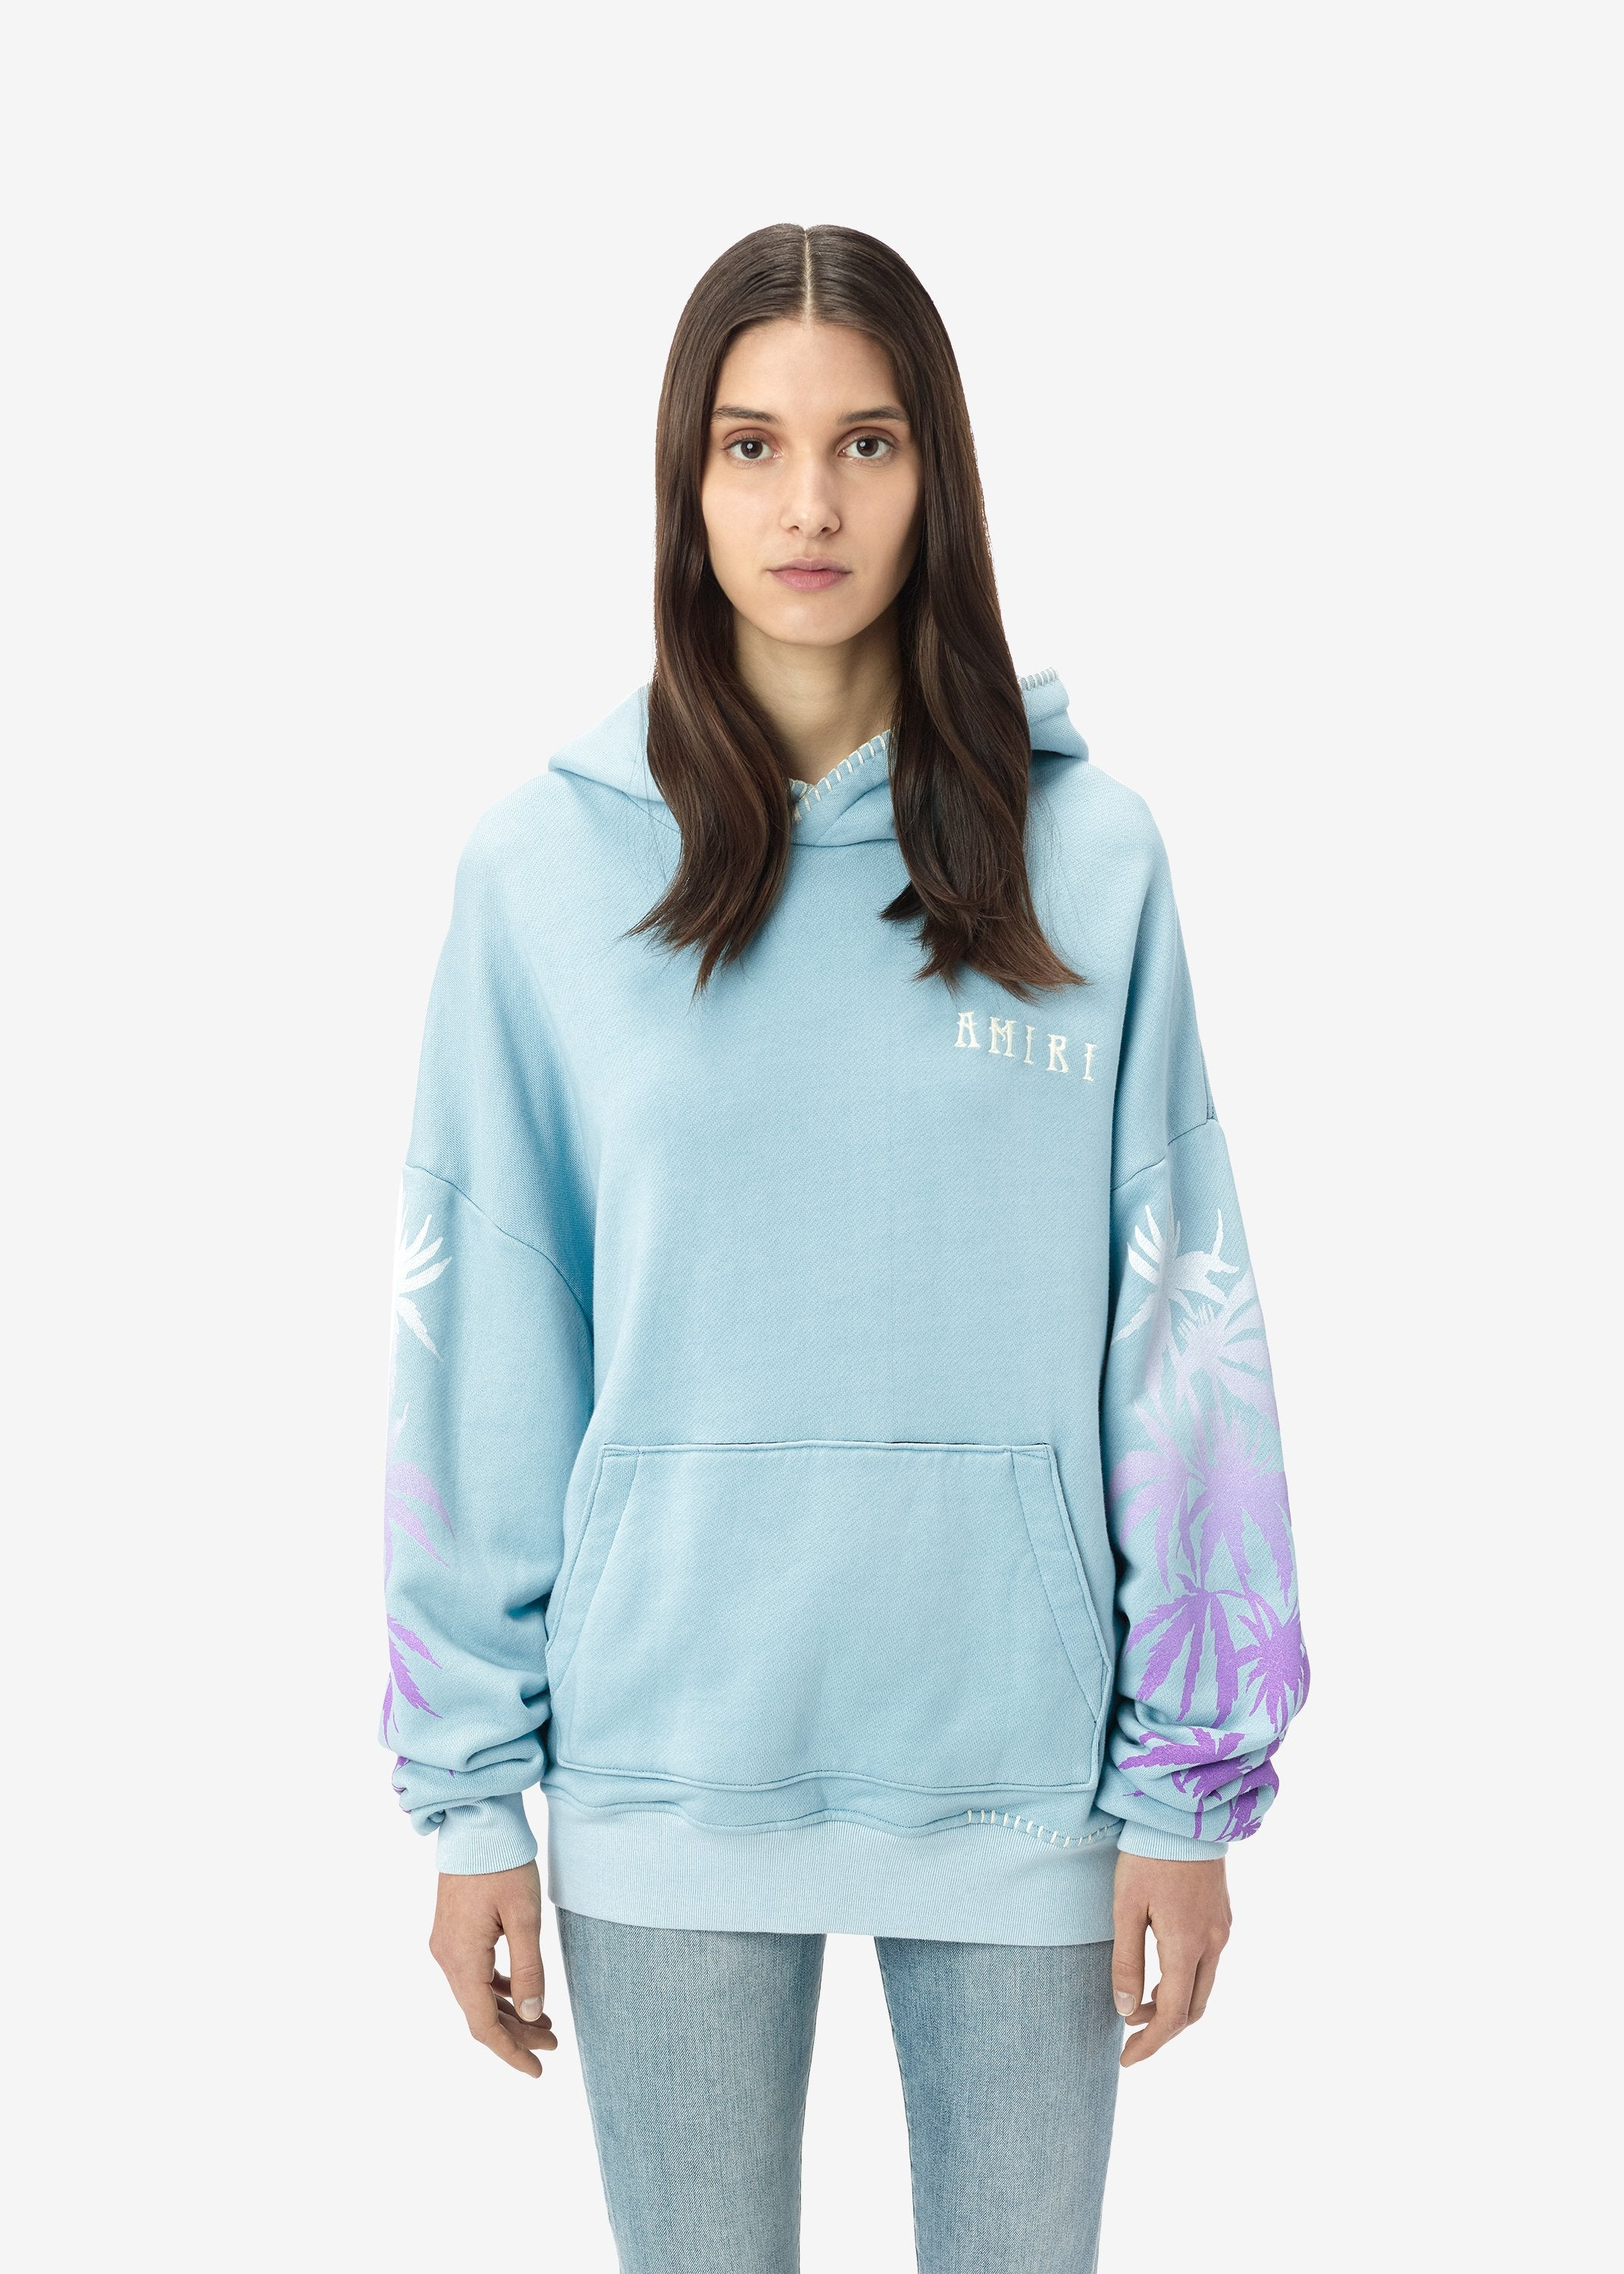 eternal-happiness-hoodie-light-blue-image-1